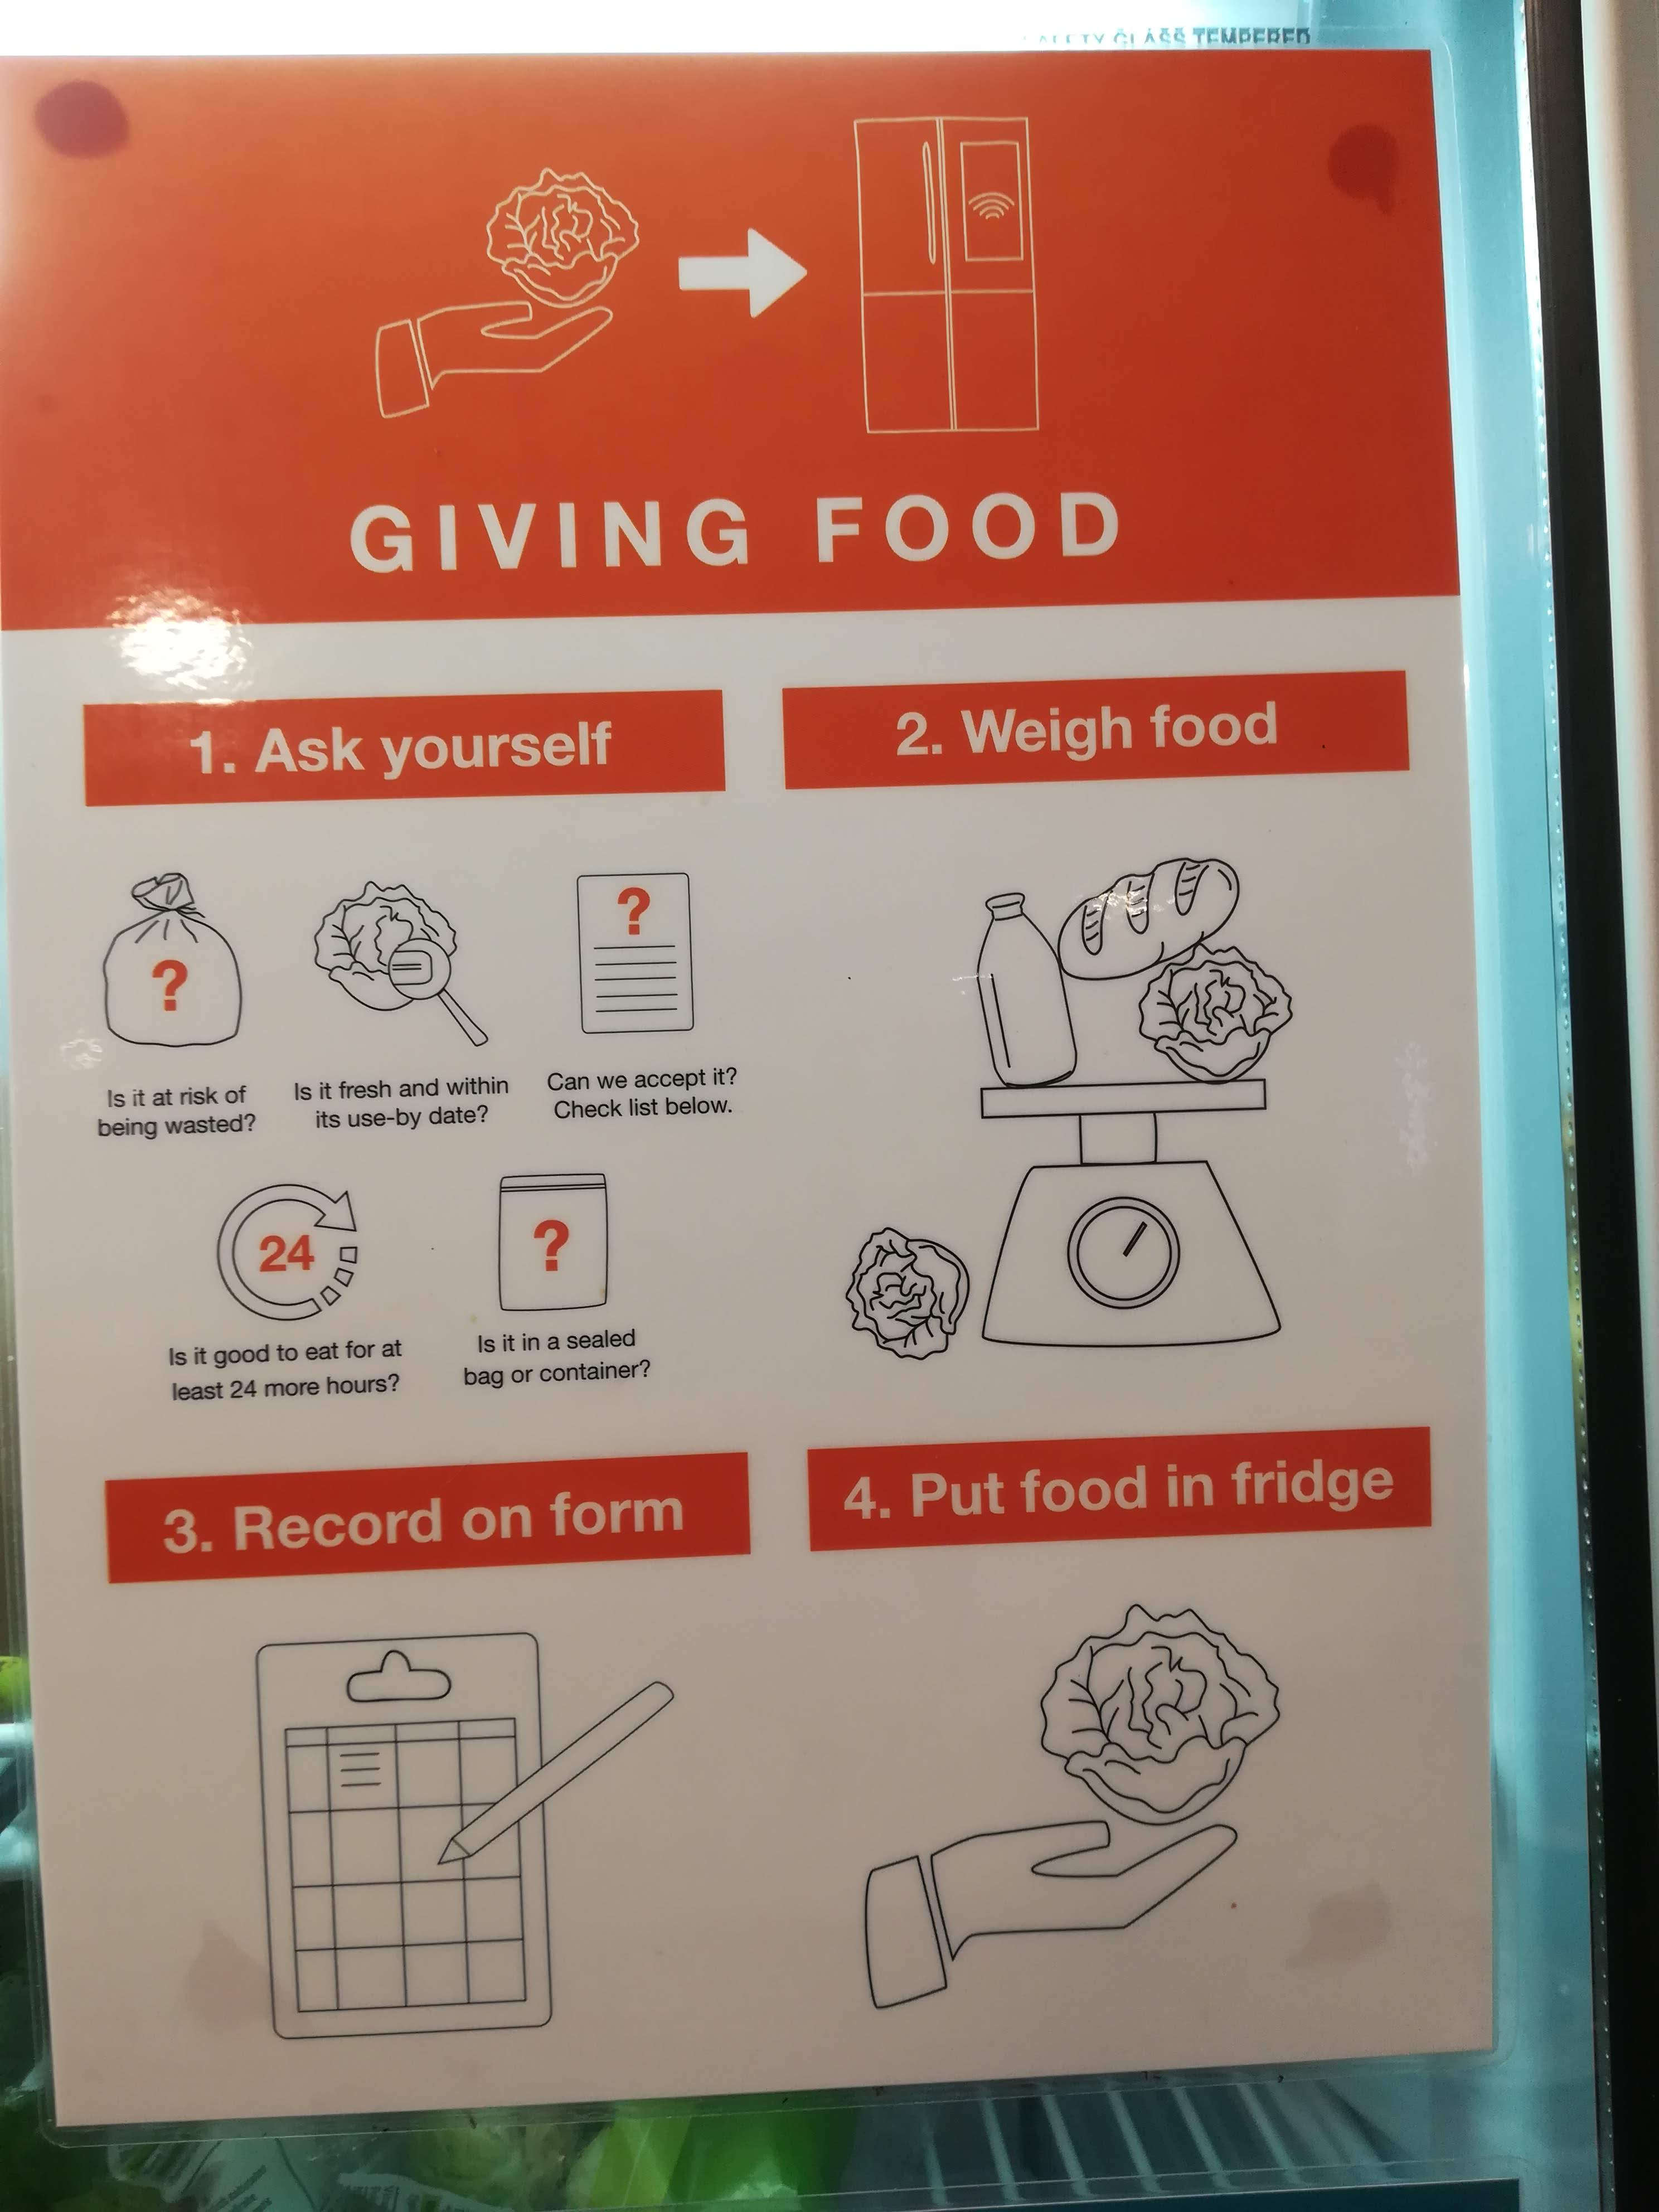 A poster with instructions for how to give food to the community fridge